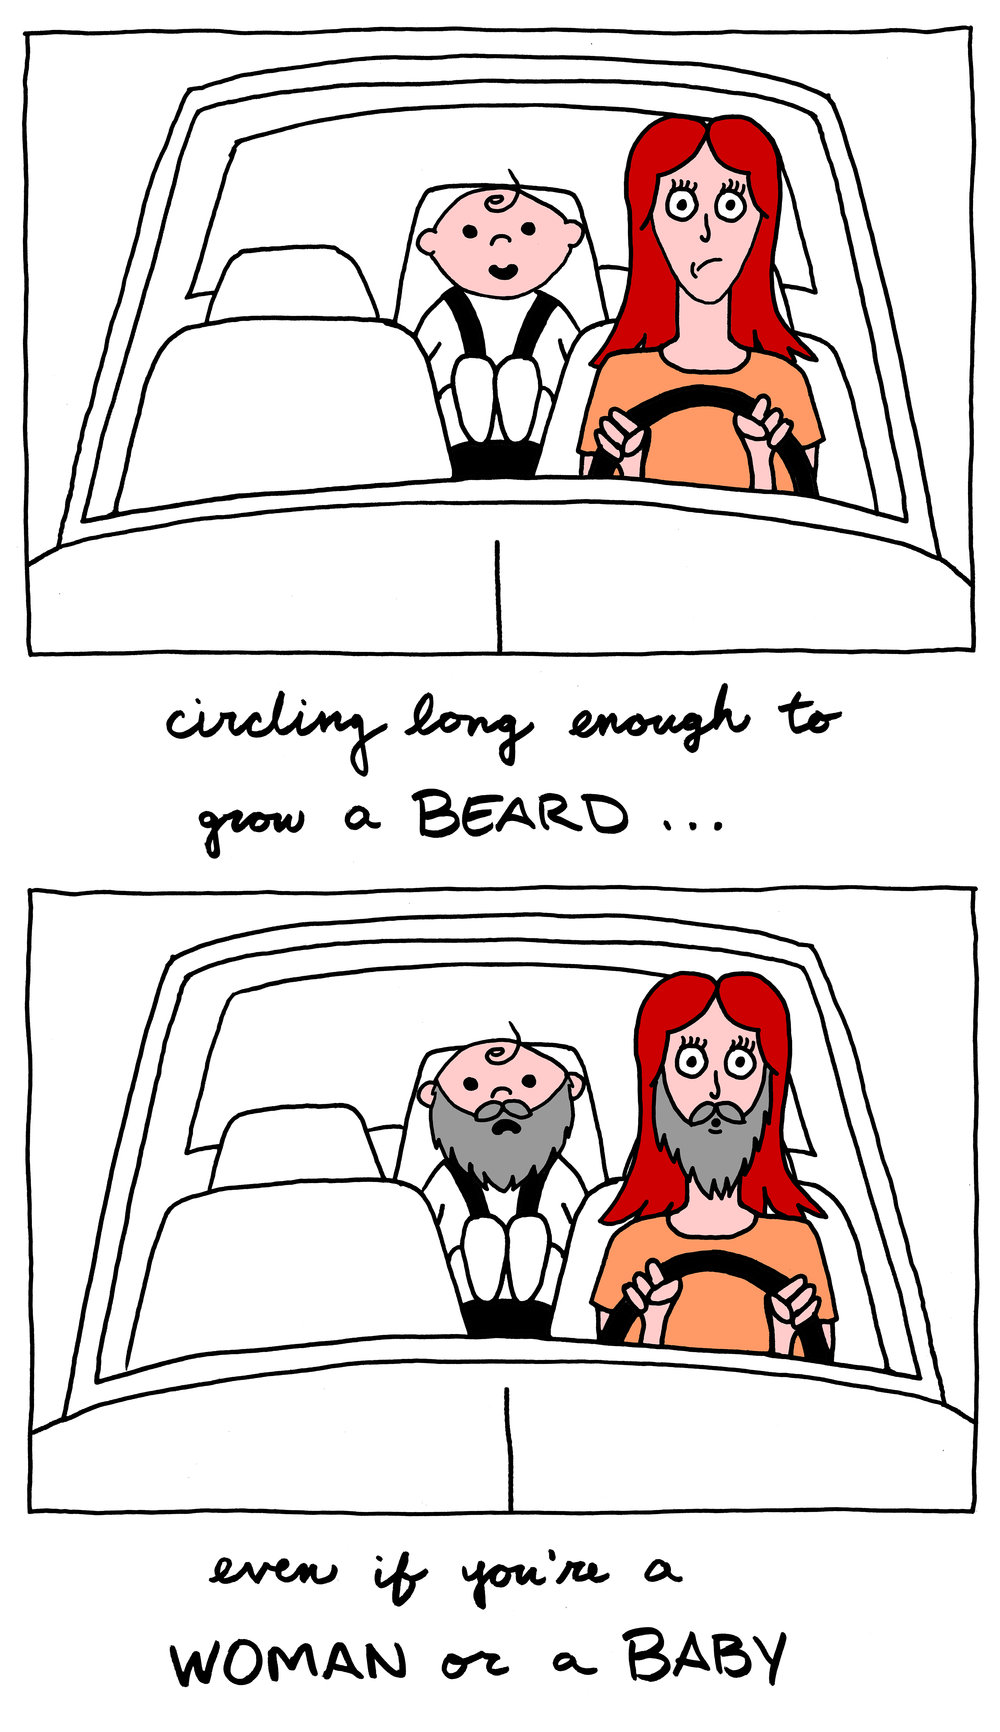 03-parking-beards.jpg